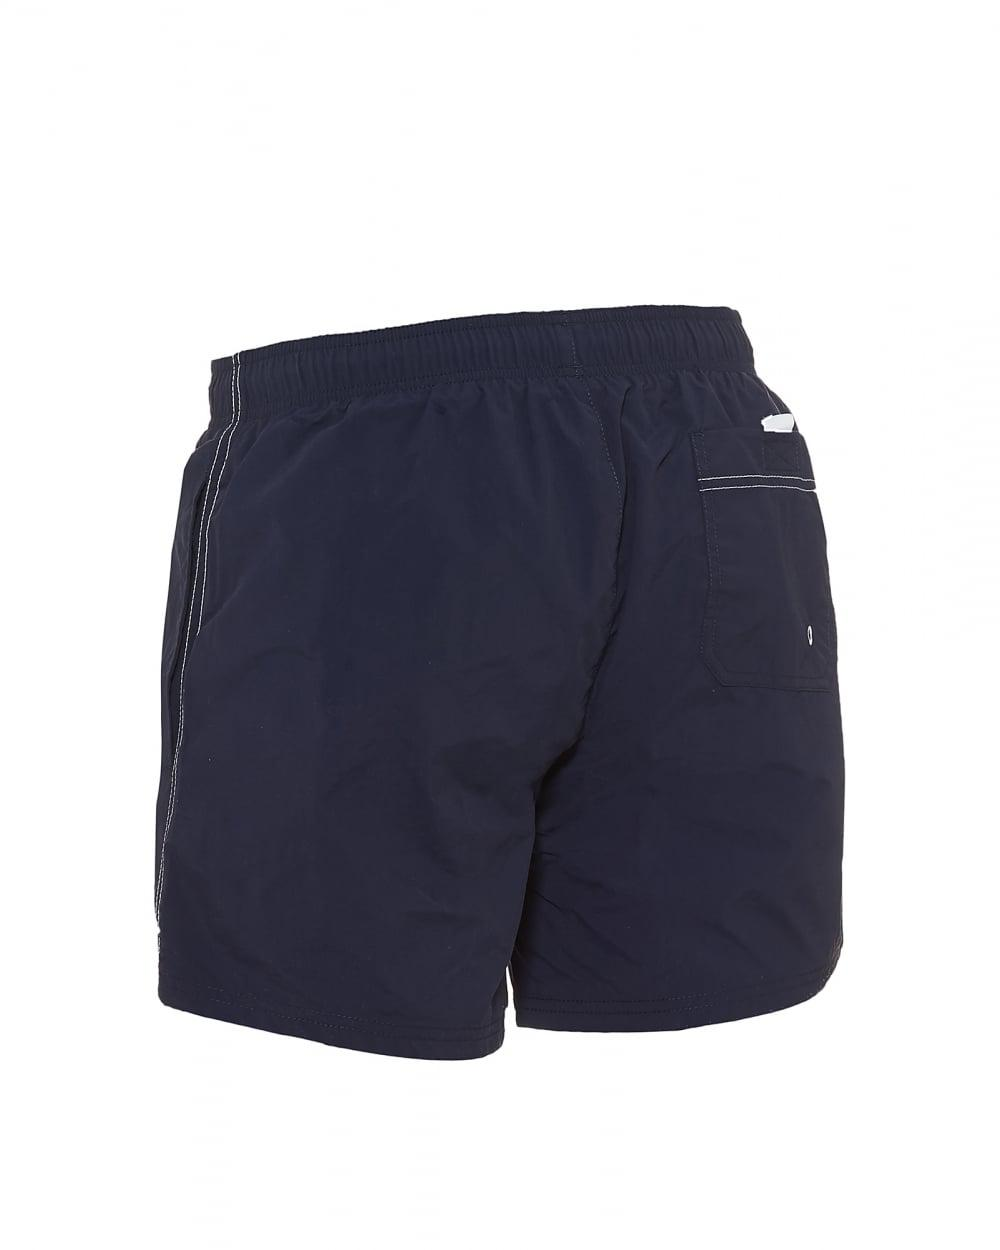 823b7ecdb9 BOSS Perch Swim Shorts, Plain Logo Navy Blue Swimming Trunks in Blue for Men  - Lyst